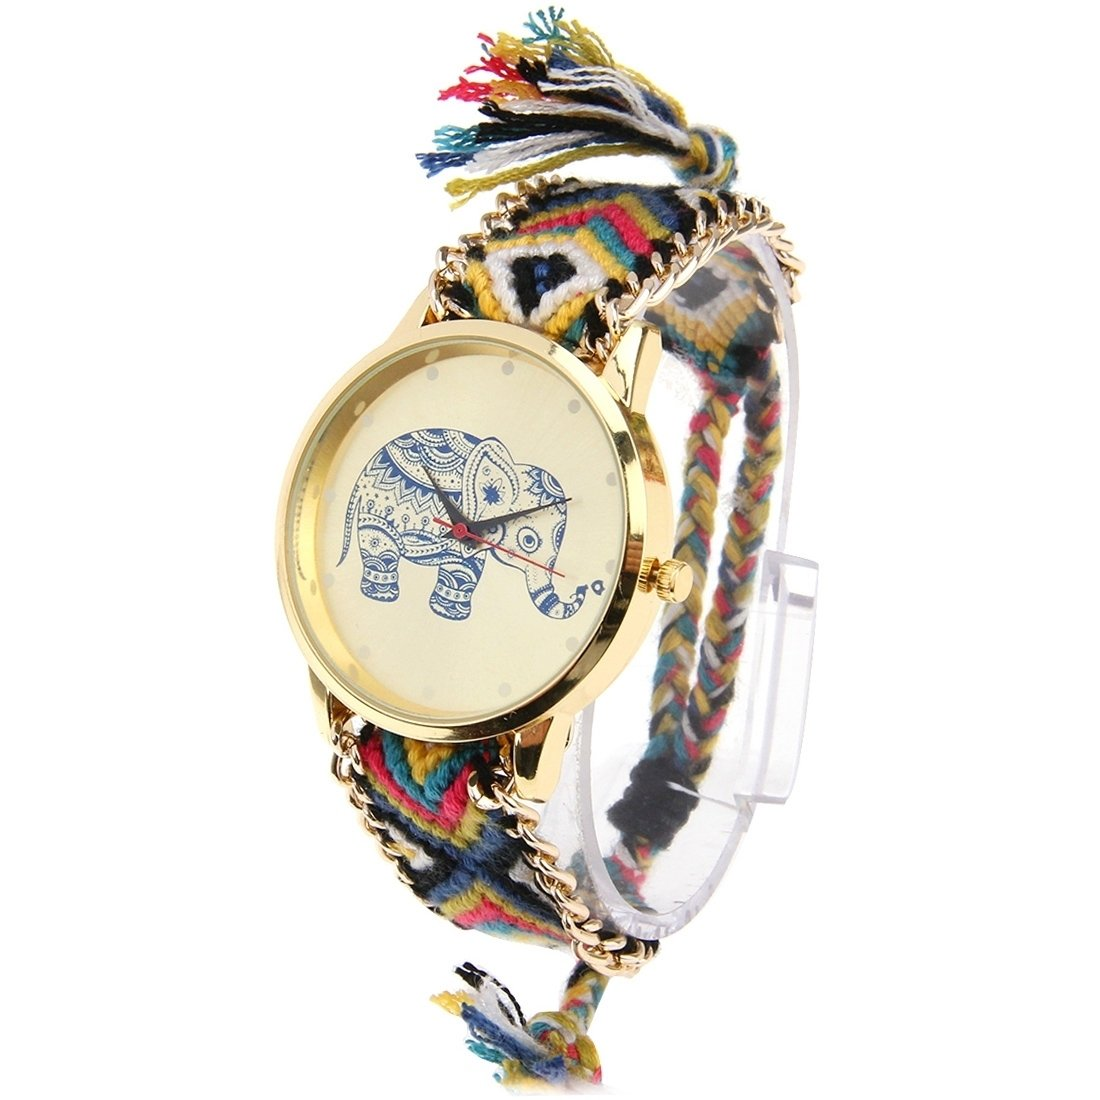 Round Dial Elephant Pattern Fashion Women Quartz Watch With Colorful Hand-woven Rope Band (SKU : S-WA-0622A)